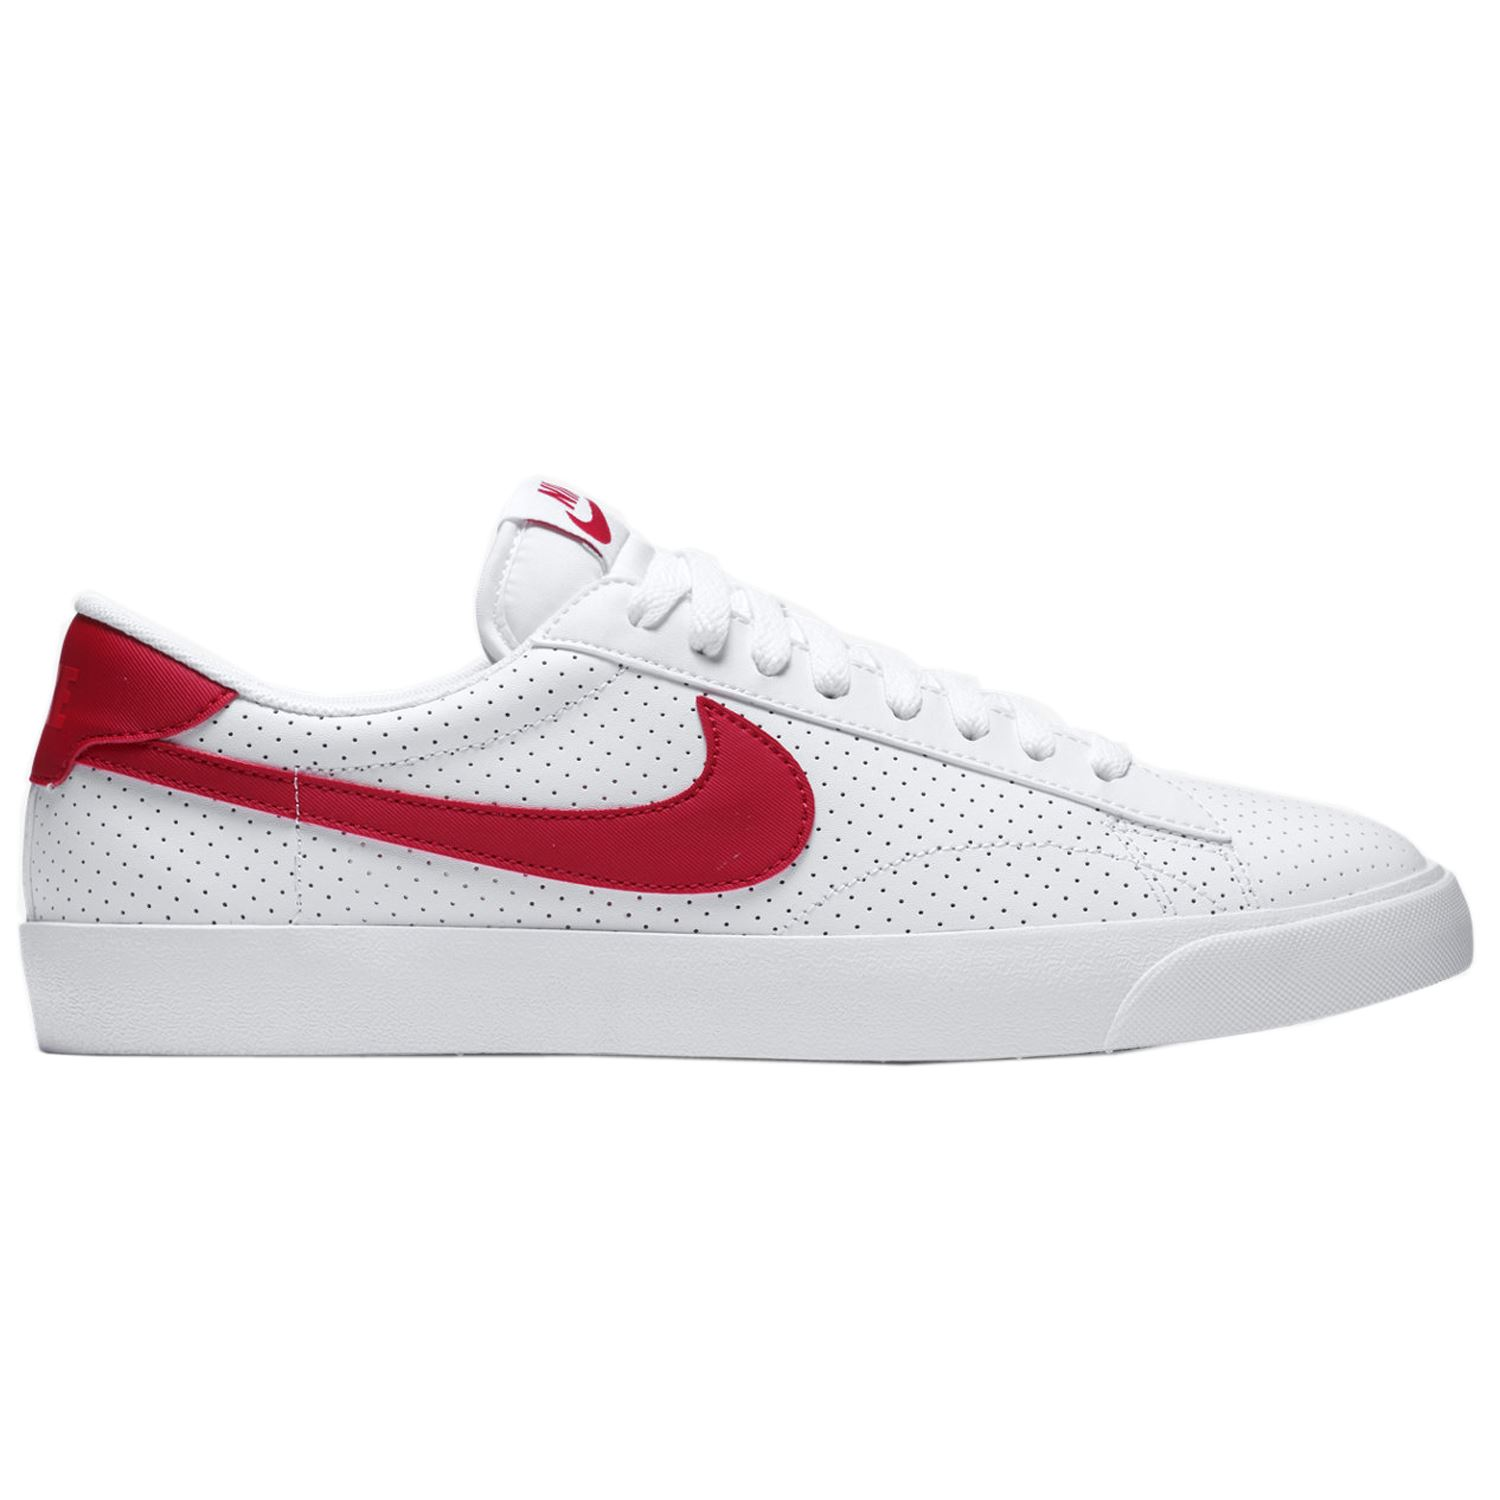 nike tennis classic ac white red mens trainers ebay. Black Bedroom Furniture Sets. Home Design Ideas